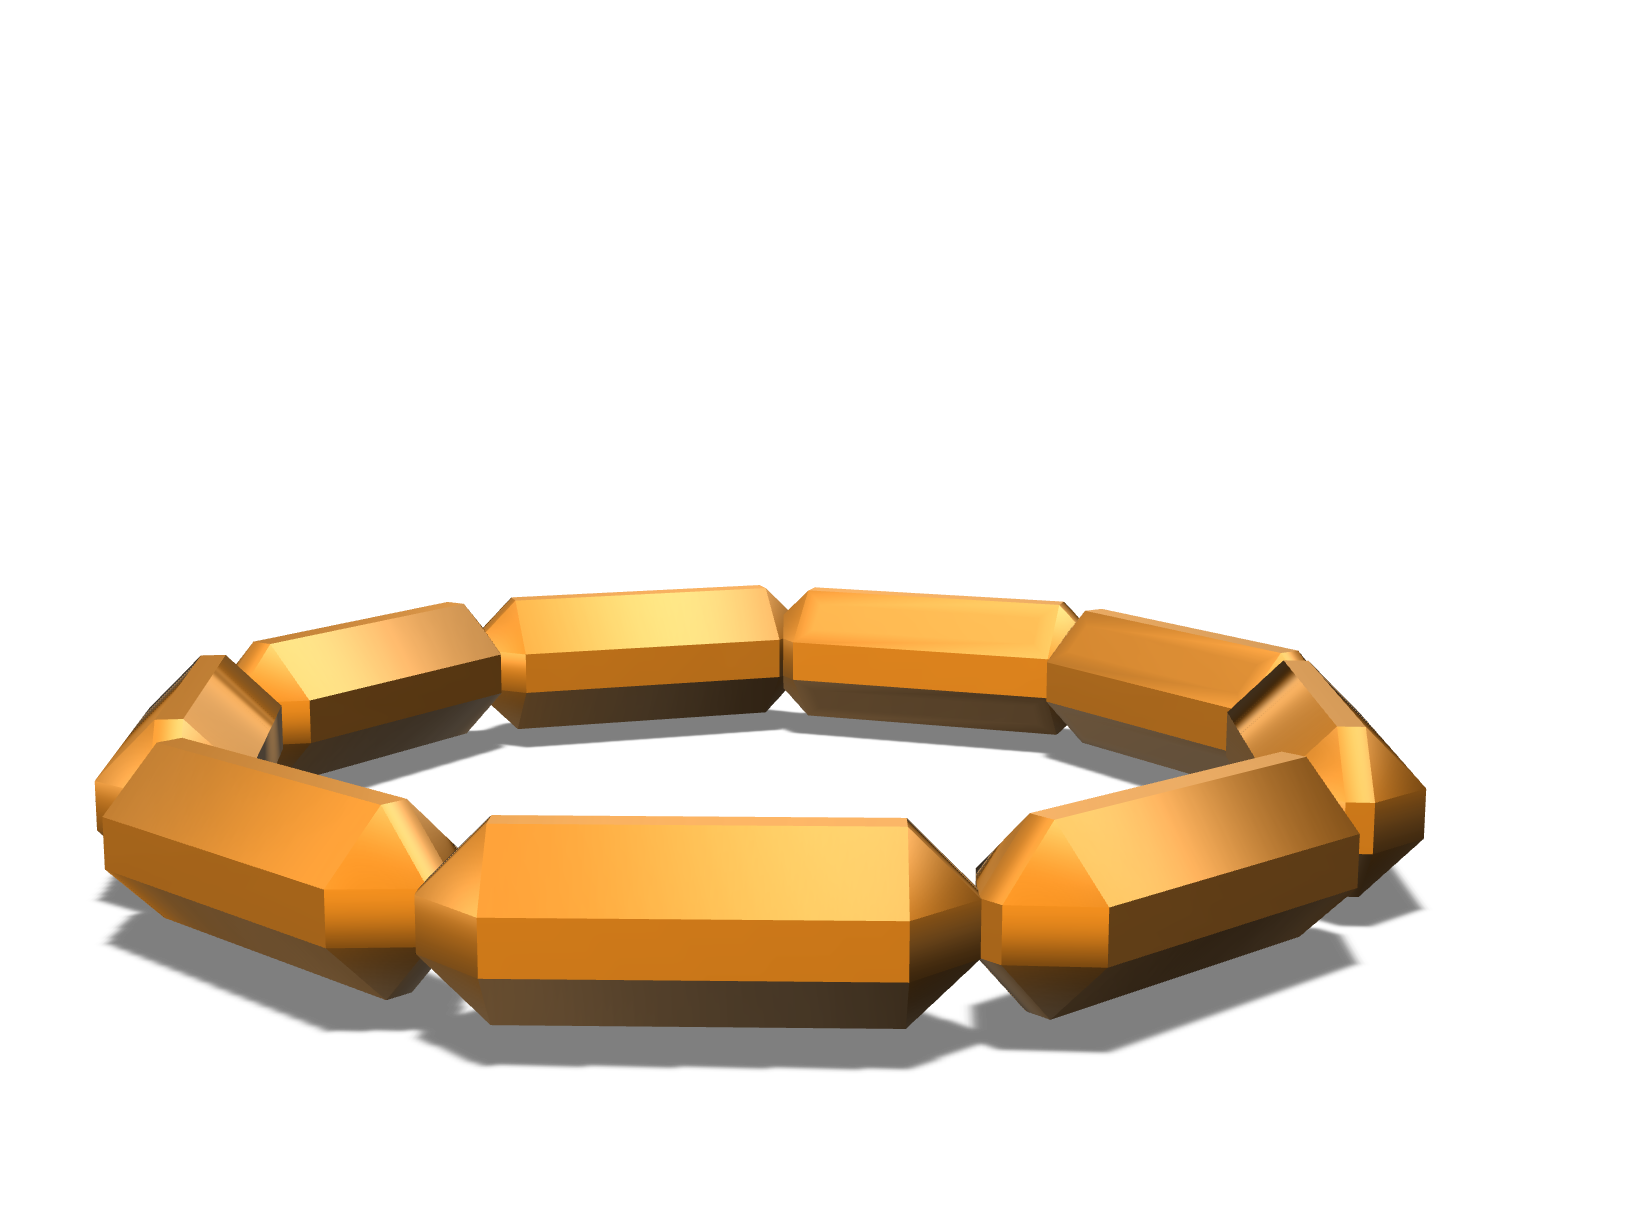 bracelet - 3D design by rajatsethi7 on Apr 29, 2018